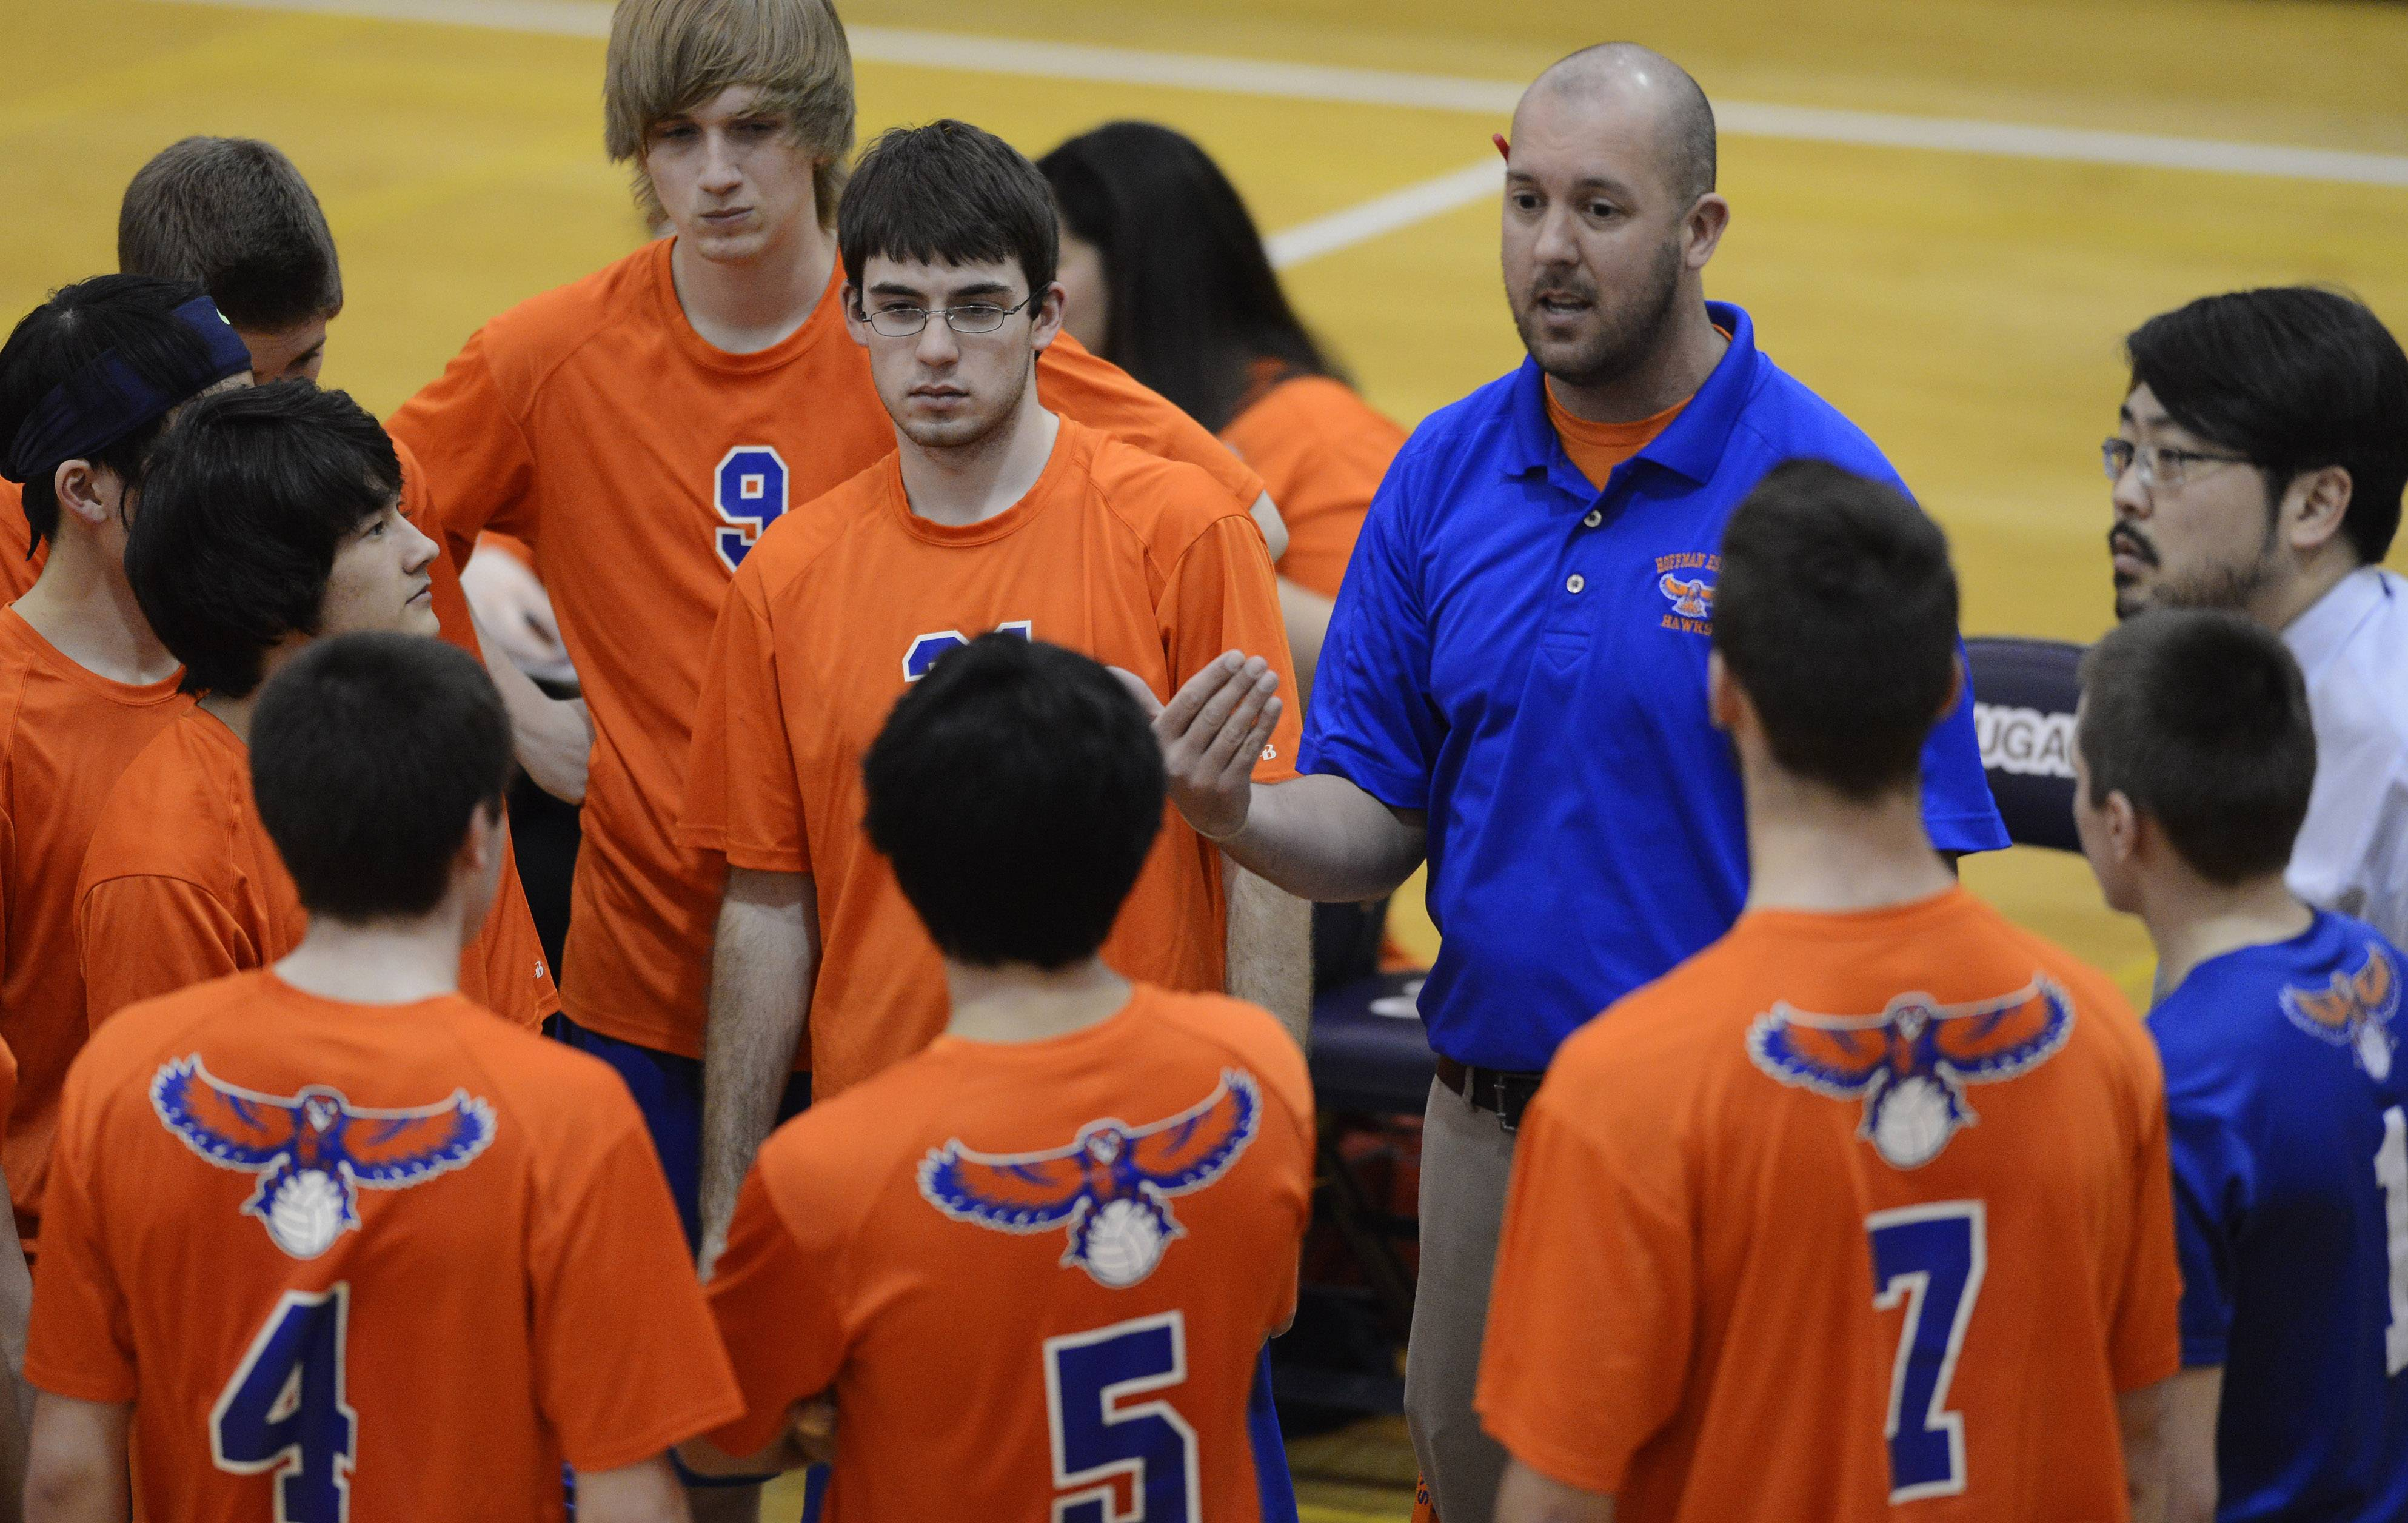 Hoffman Estates volleyball coach Dan Hutton talks with his team during a timeout.